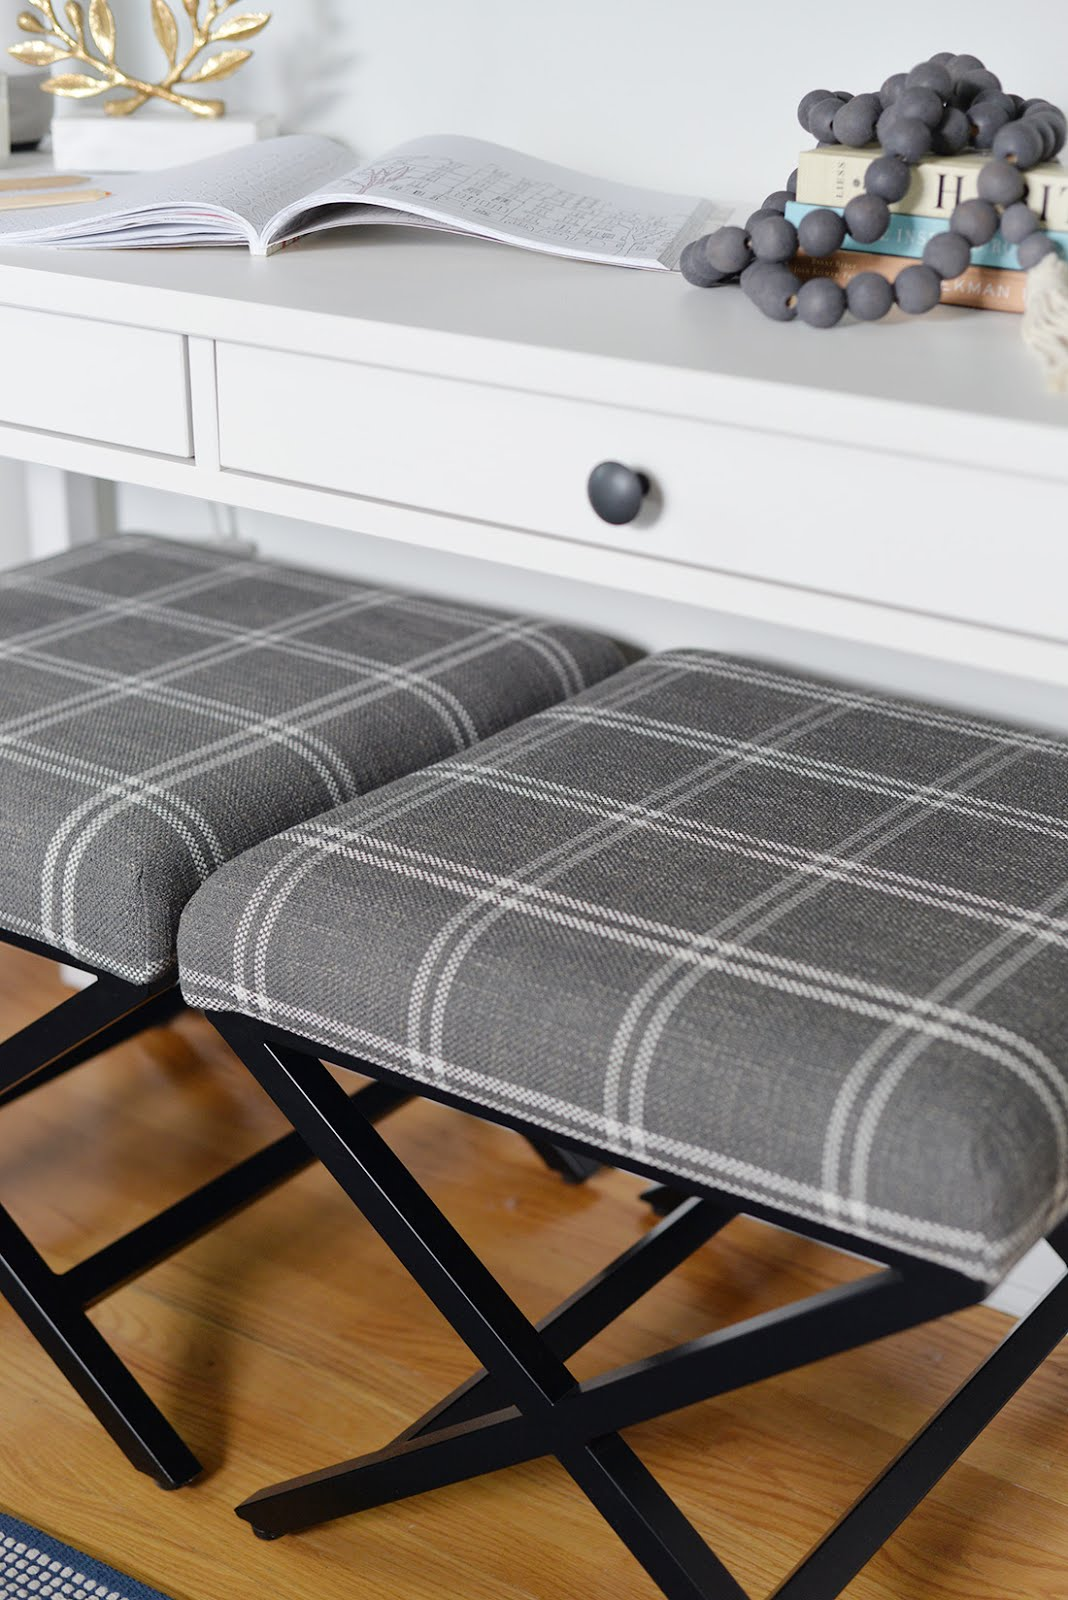 small guest bedroom ideas, cozy guest bedroom, farmhouse guest bedroom, guest bedroom decor, bedroom renovation, homepop plaid ottoman